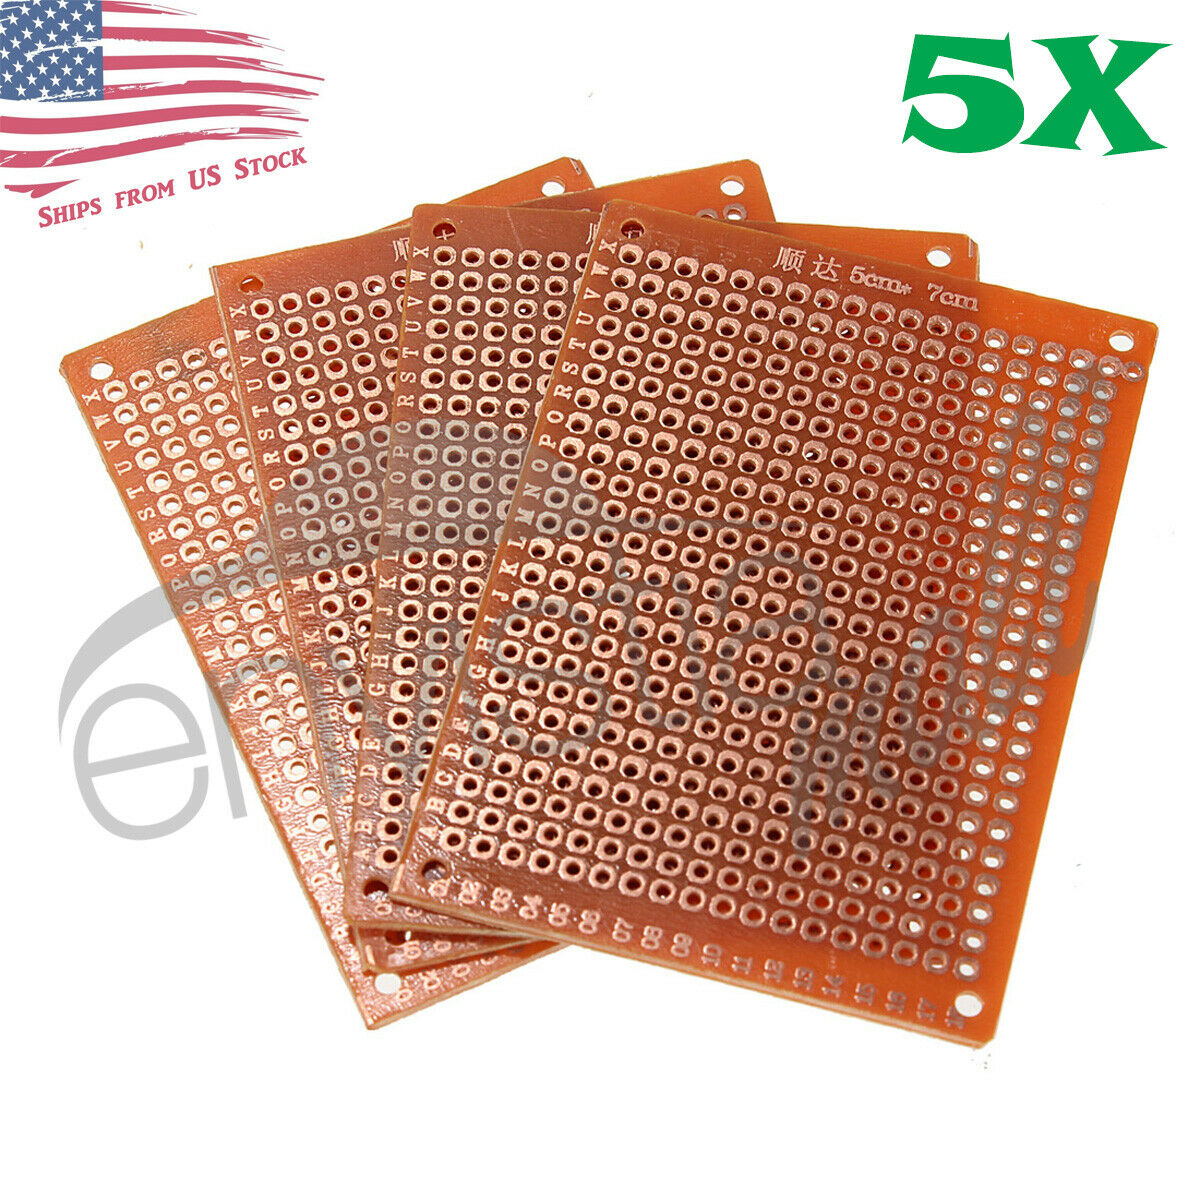 5pcs 5cm X 7cm Pcb Prototyping Perf Boards Breadboards Diy Us Details About 12 Pcs Kit Printed Circuit Breadboard